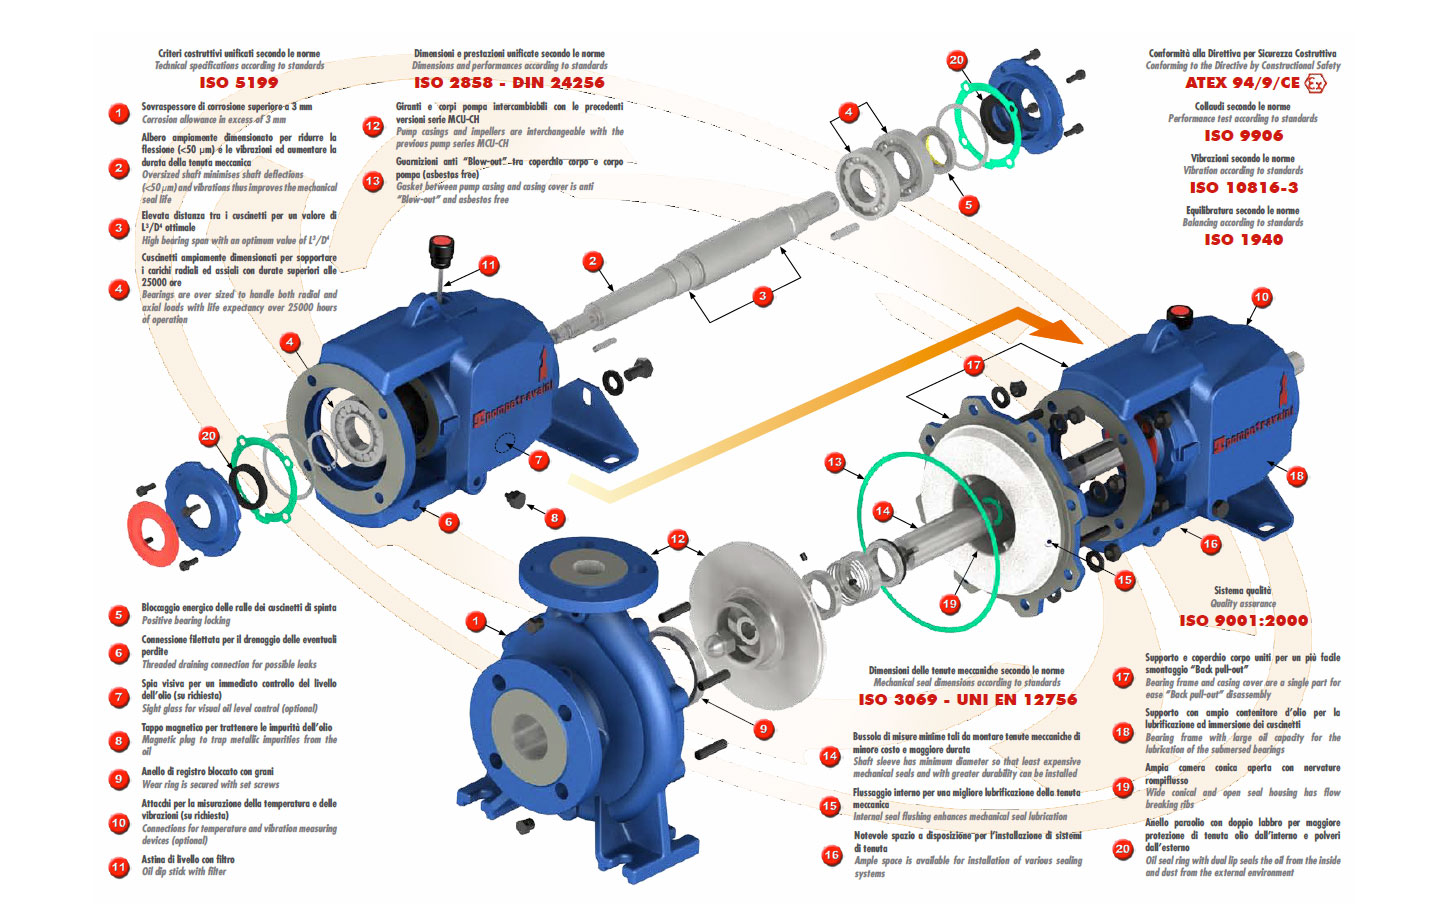 TCH - Chemvac Pumps Limited